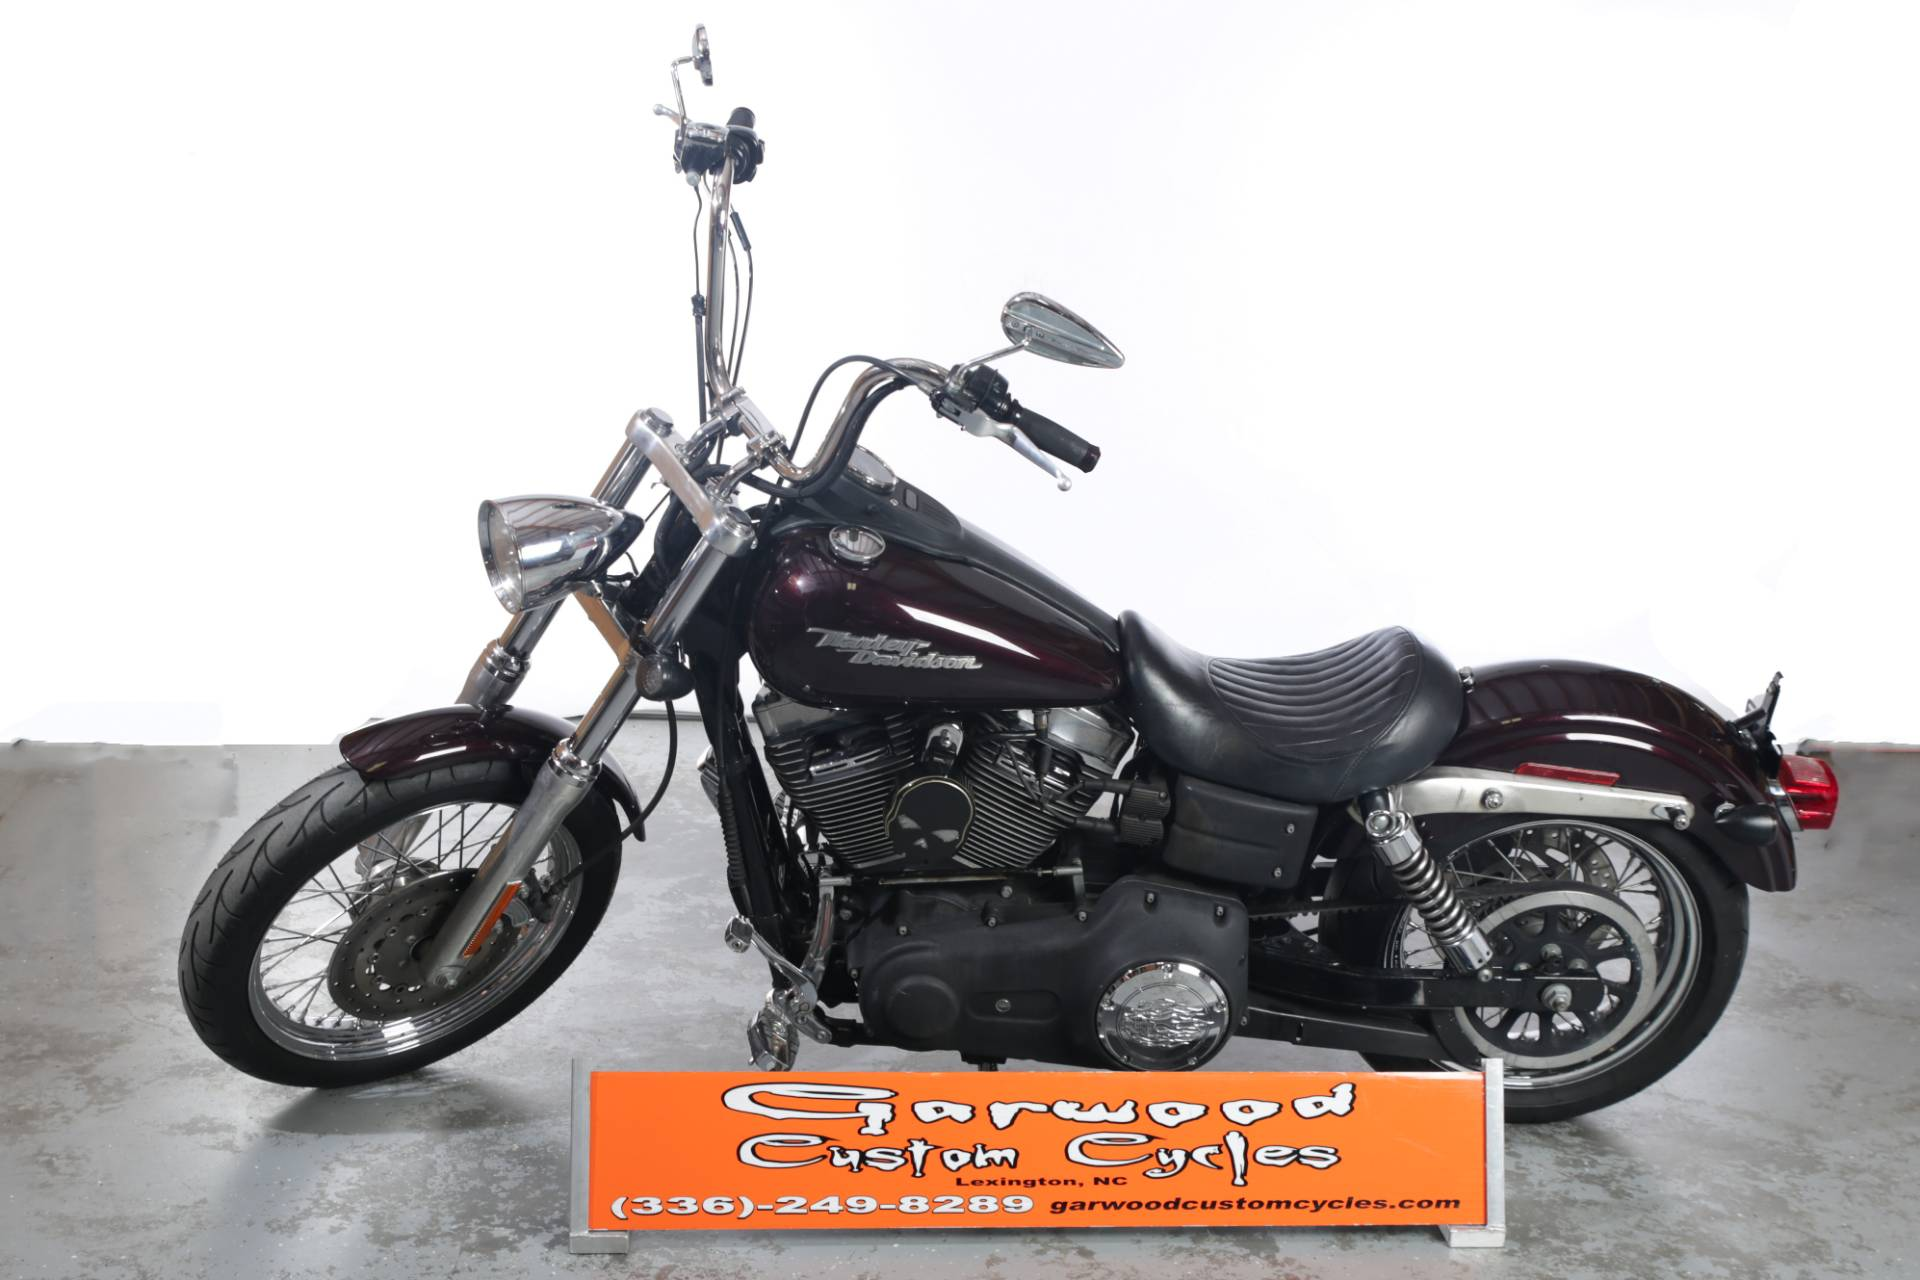 2007 Harley Davidson FXDB in Lexington, North Carolina - Photo 5